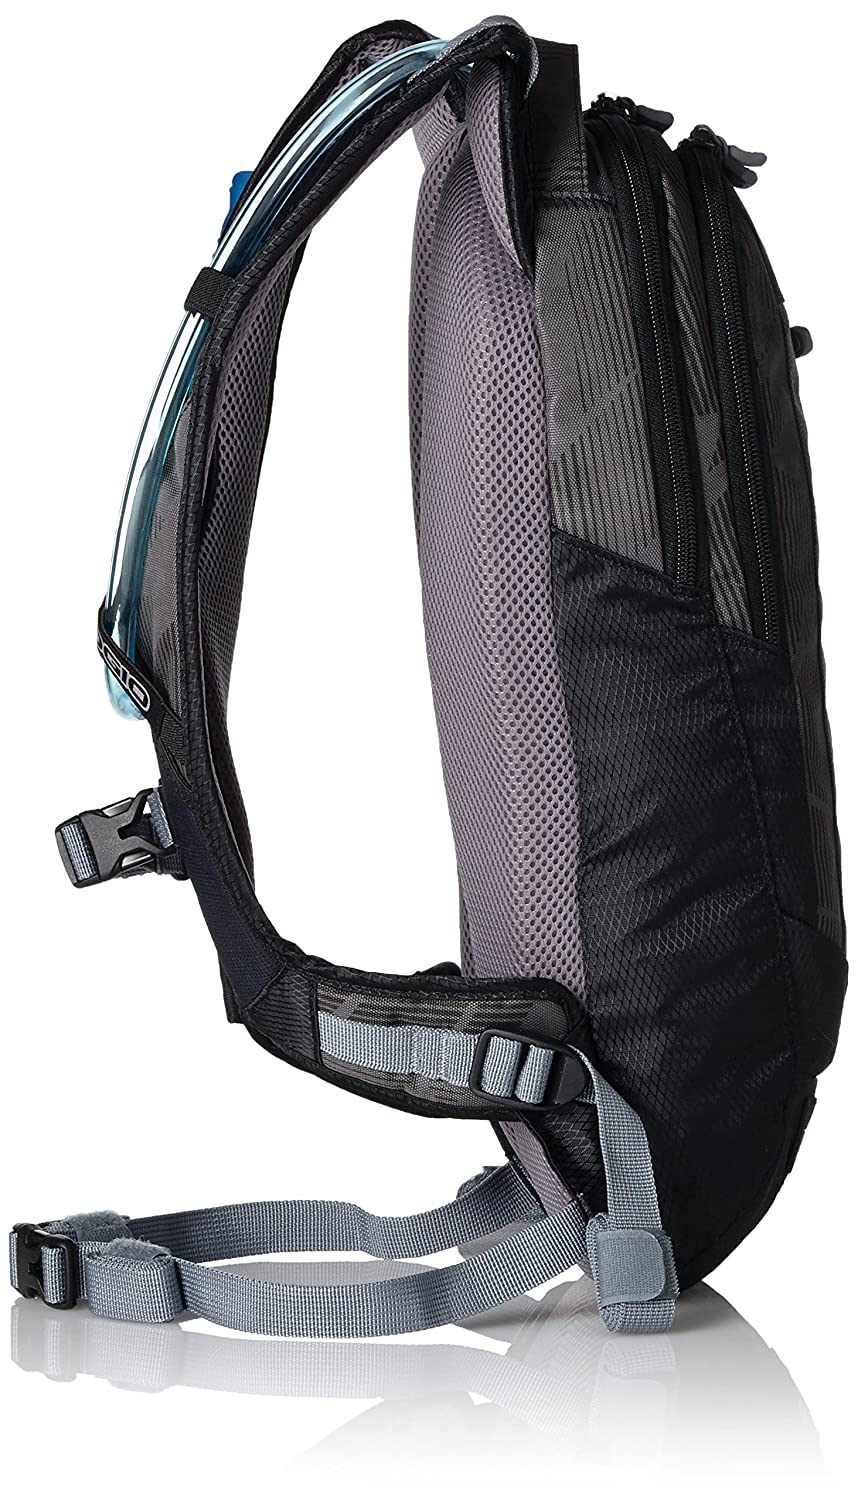 OGIO 122006.03 Atlas 100 oz.//3 Liter Hydration Pack Stealth Black